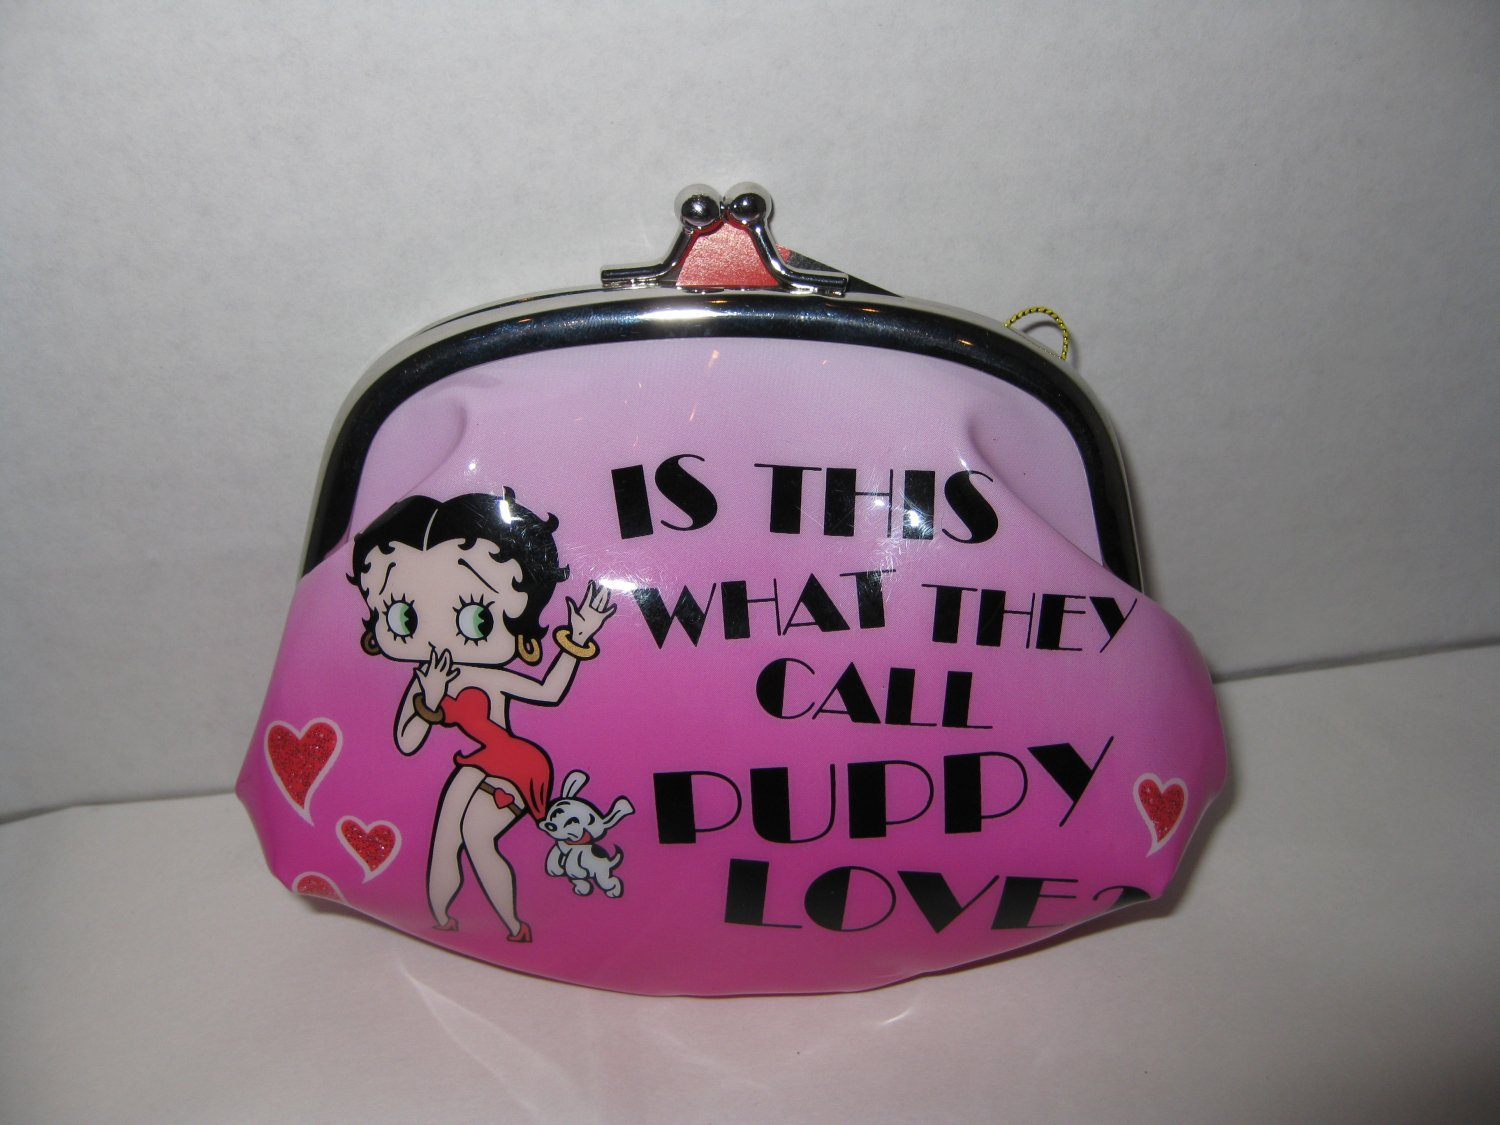 """is this what they call puppy love?""  Betty Boop coin purse $14.99 #20125"